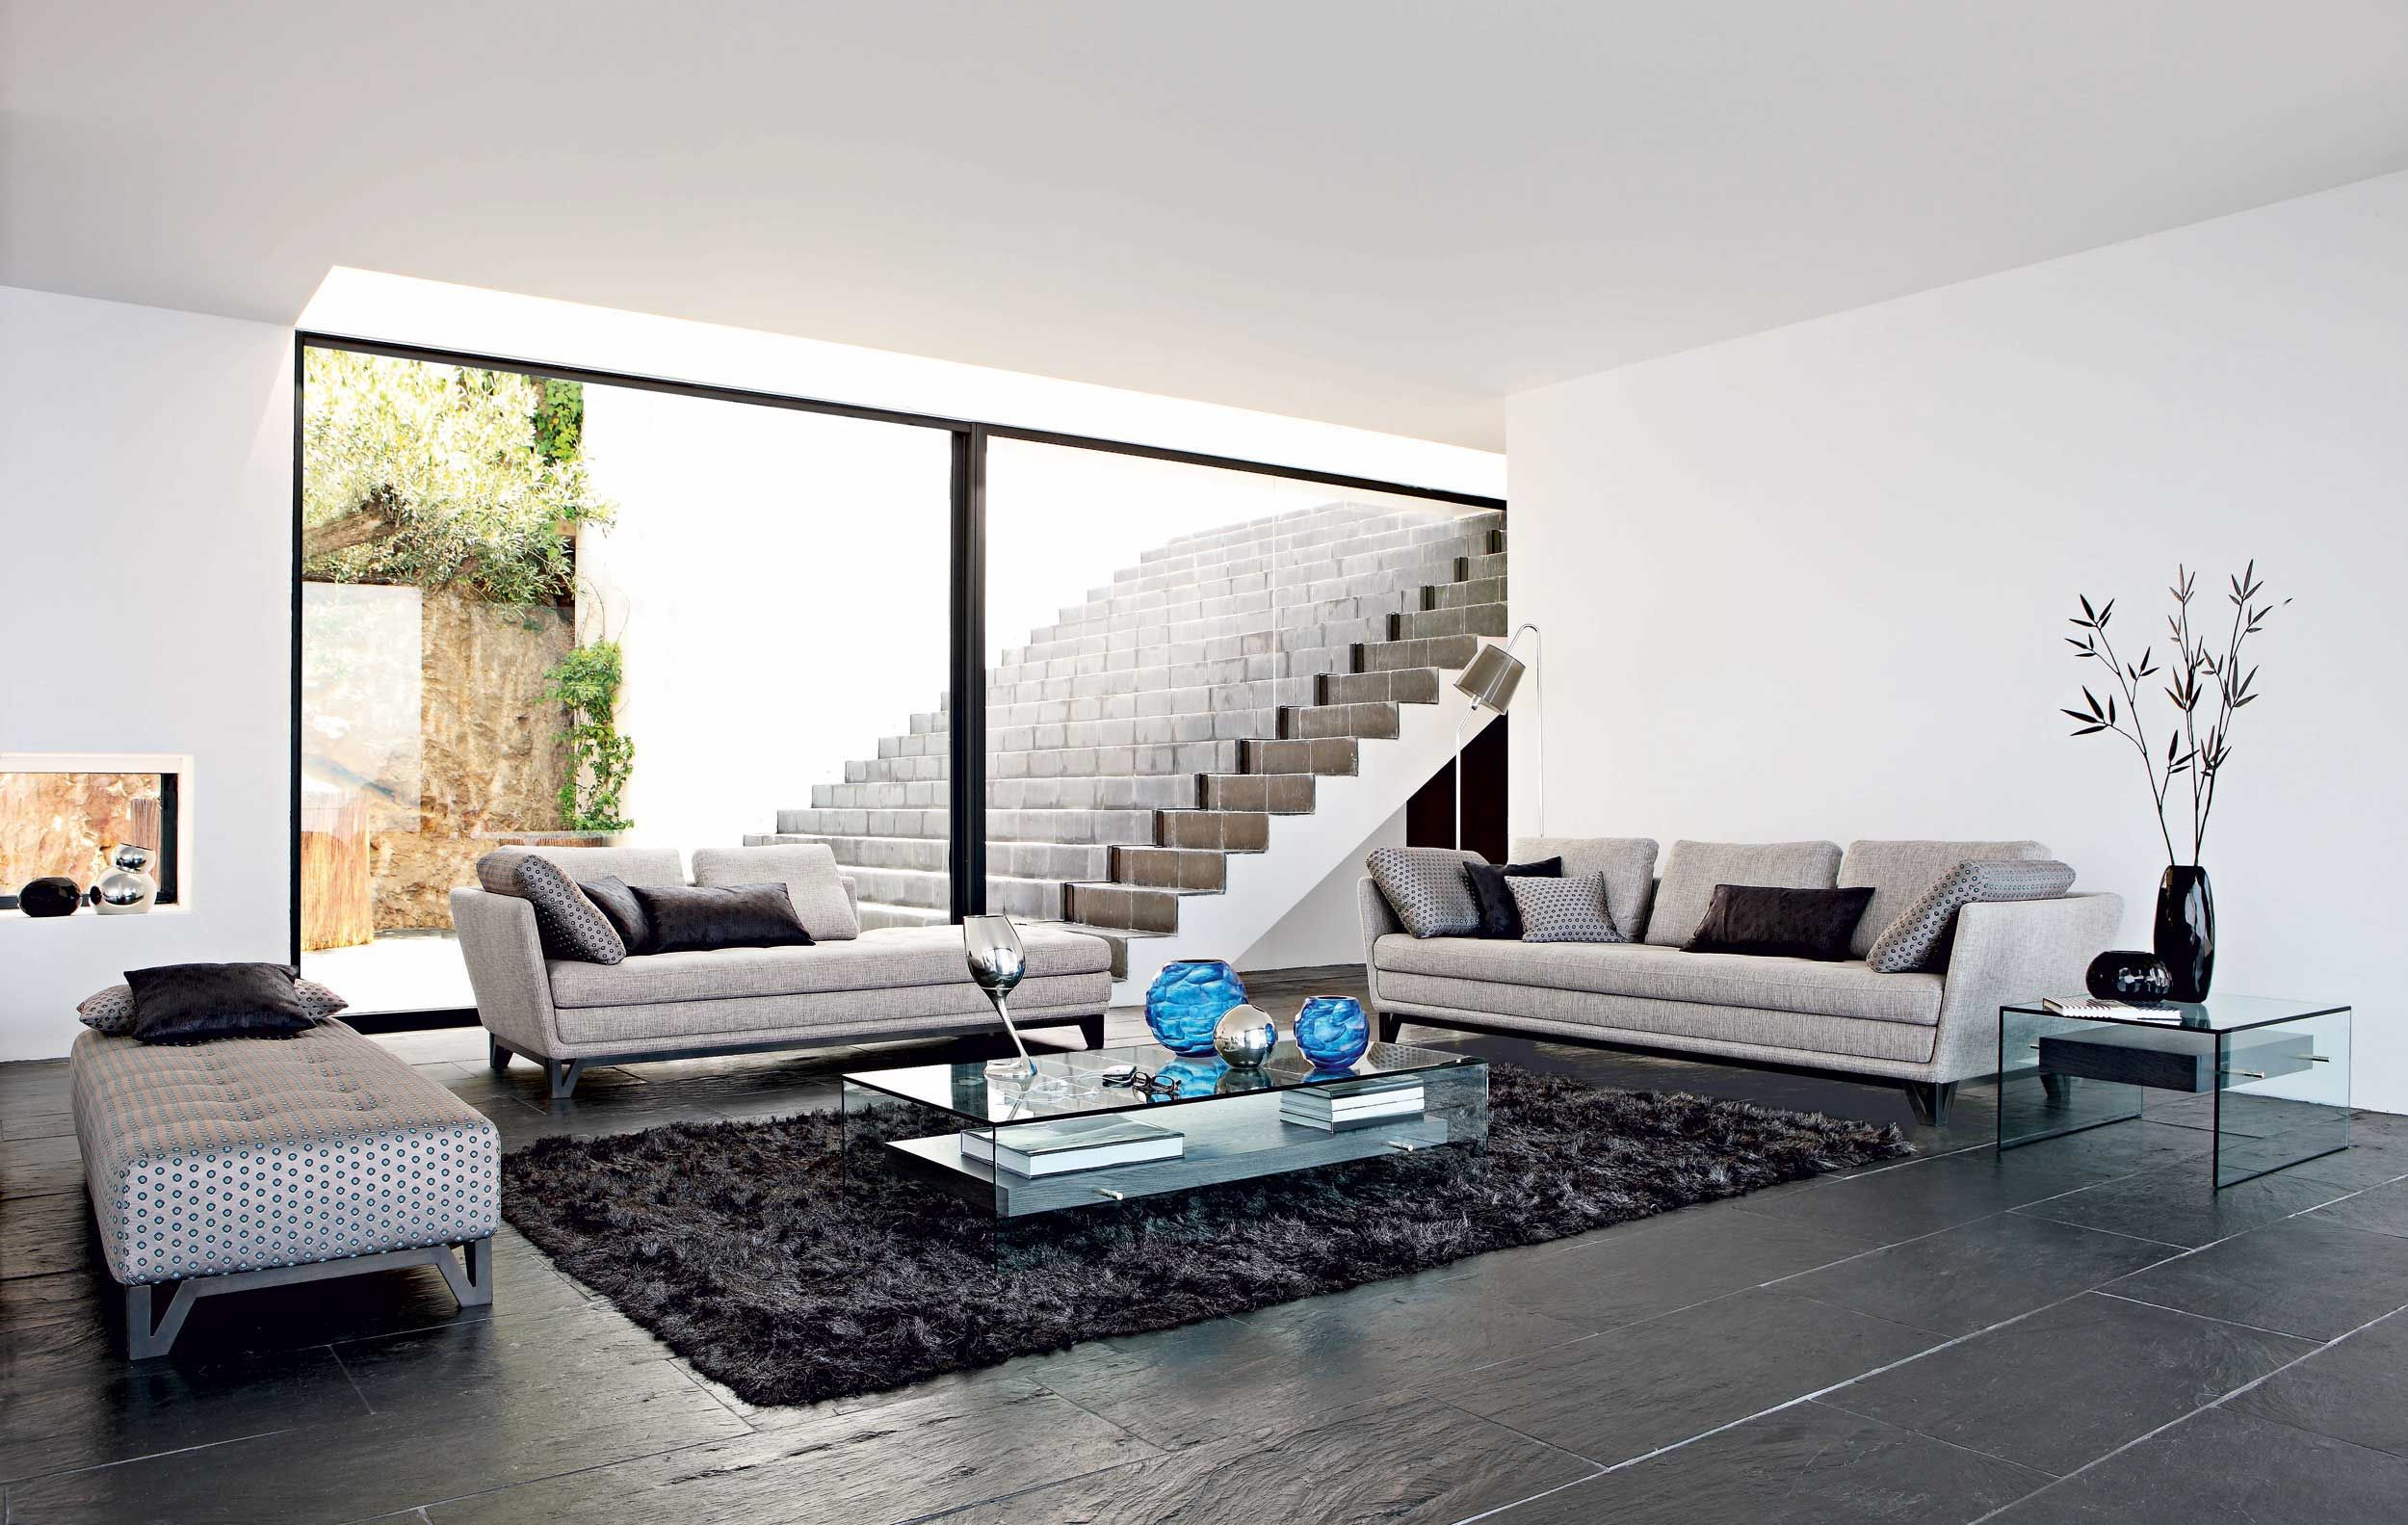 roche bobois littoral | Inspiration appartement | Pinterest ...